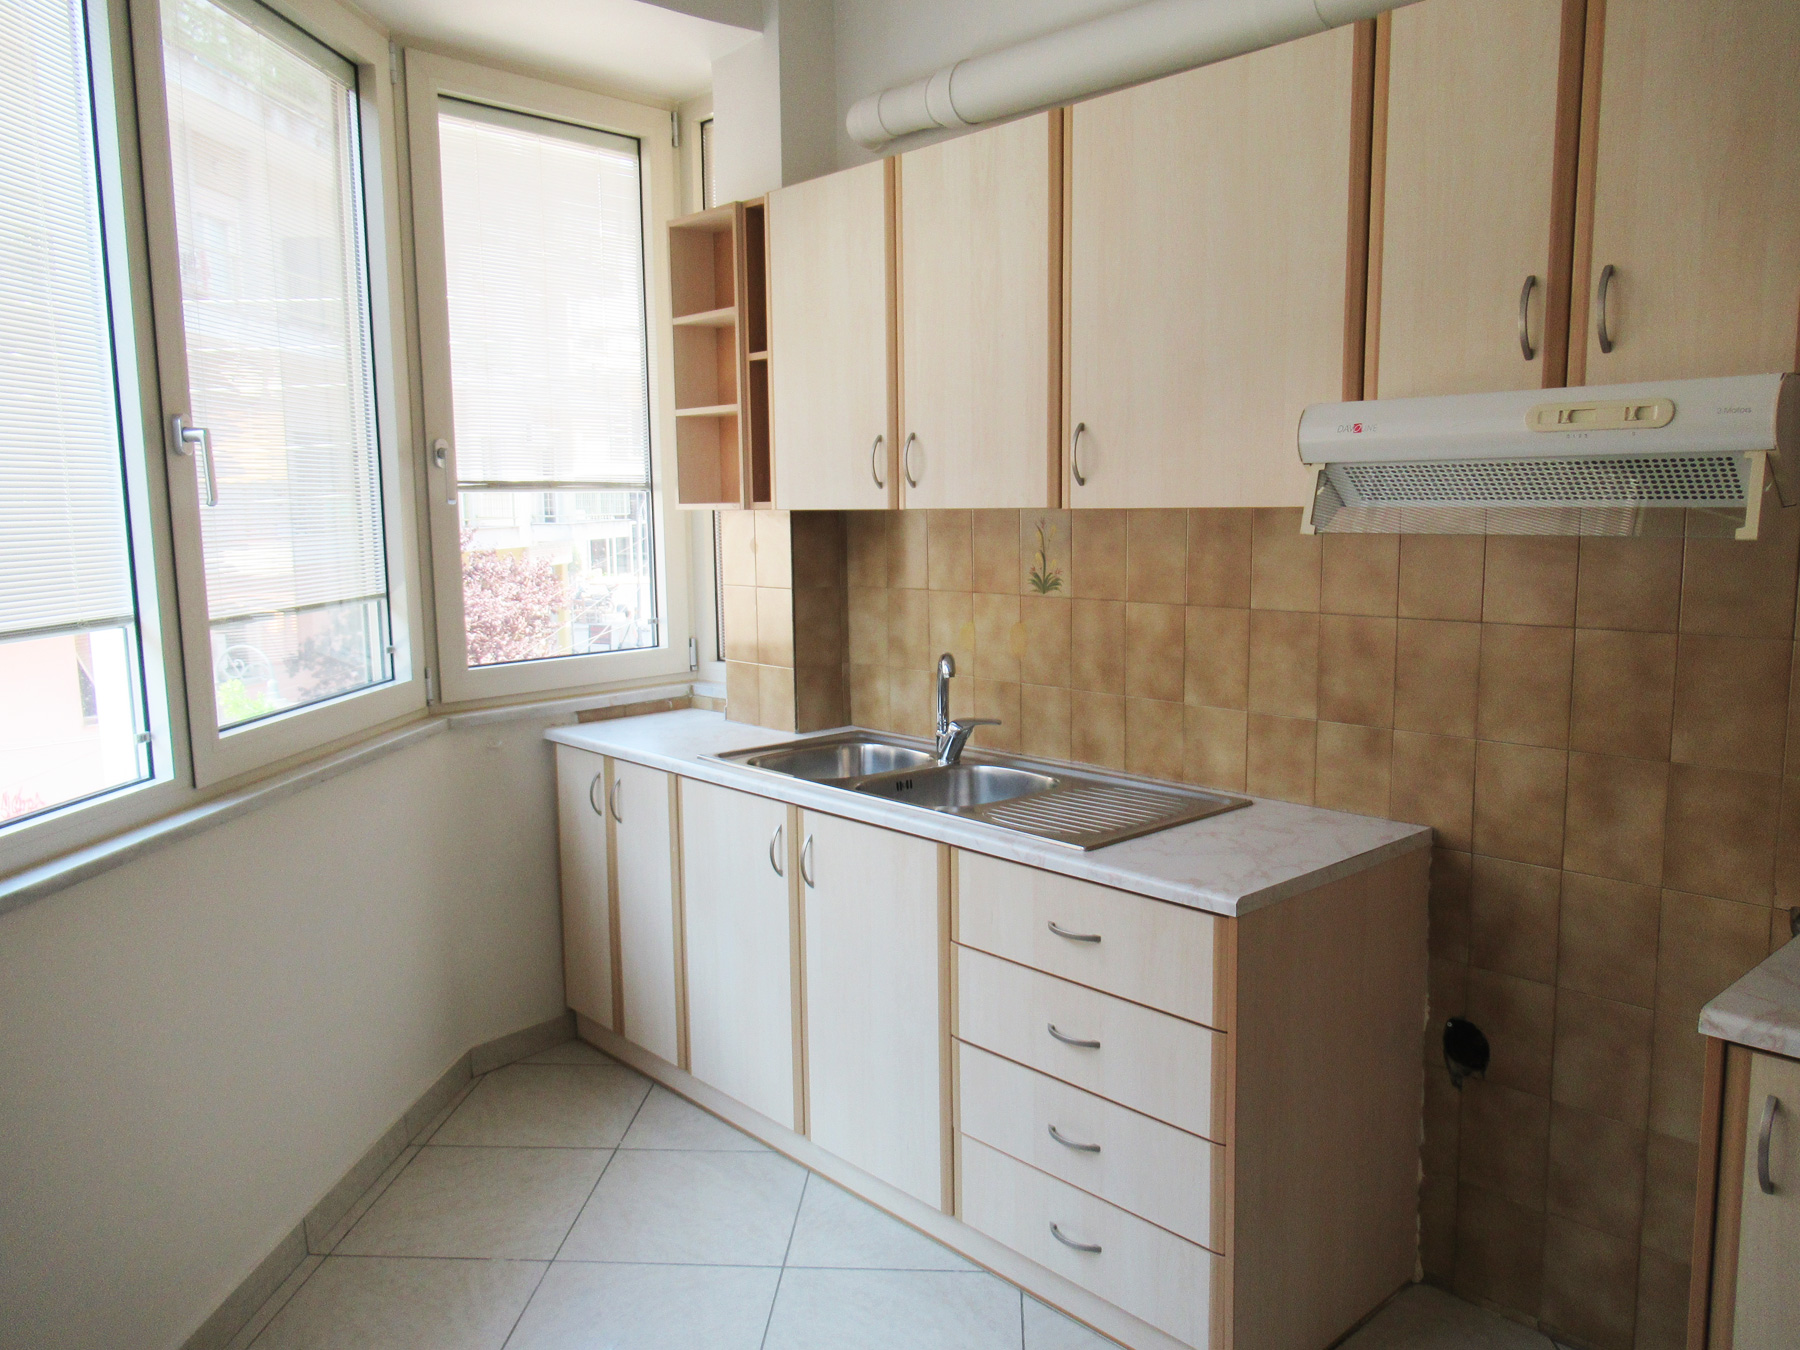 For rent renovated two bedroom apartment of 54 sq.m. on the 2nd floor in the center of Ioannina